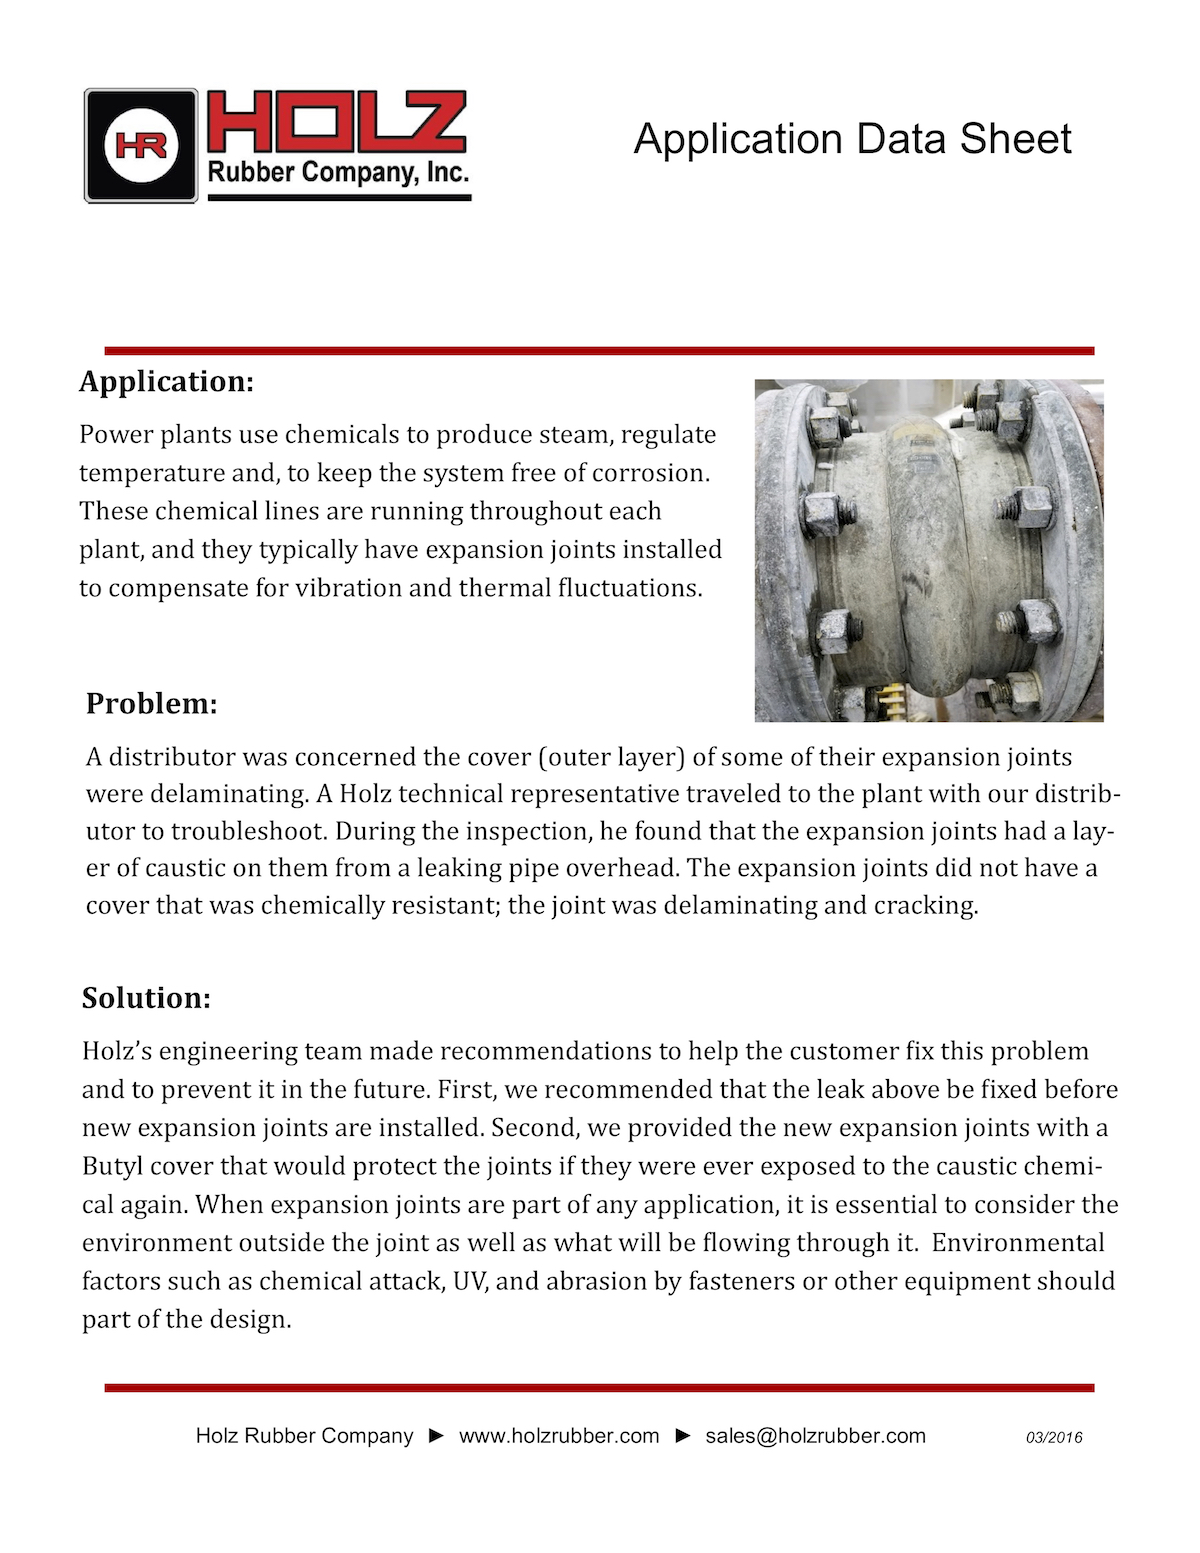 Overhead Piping Damages Expansion Joint